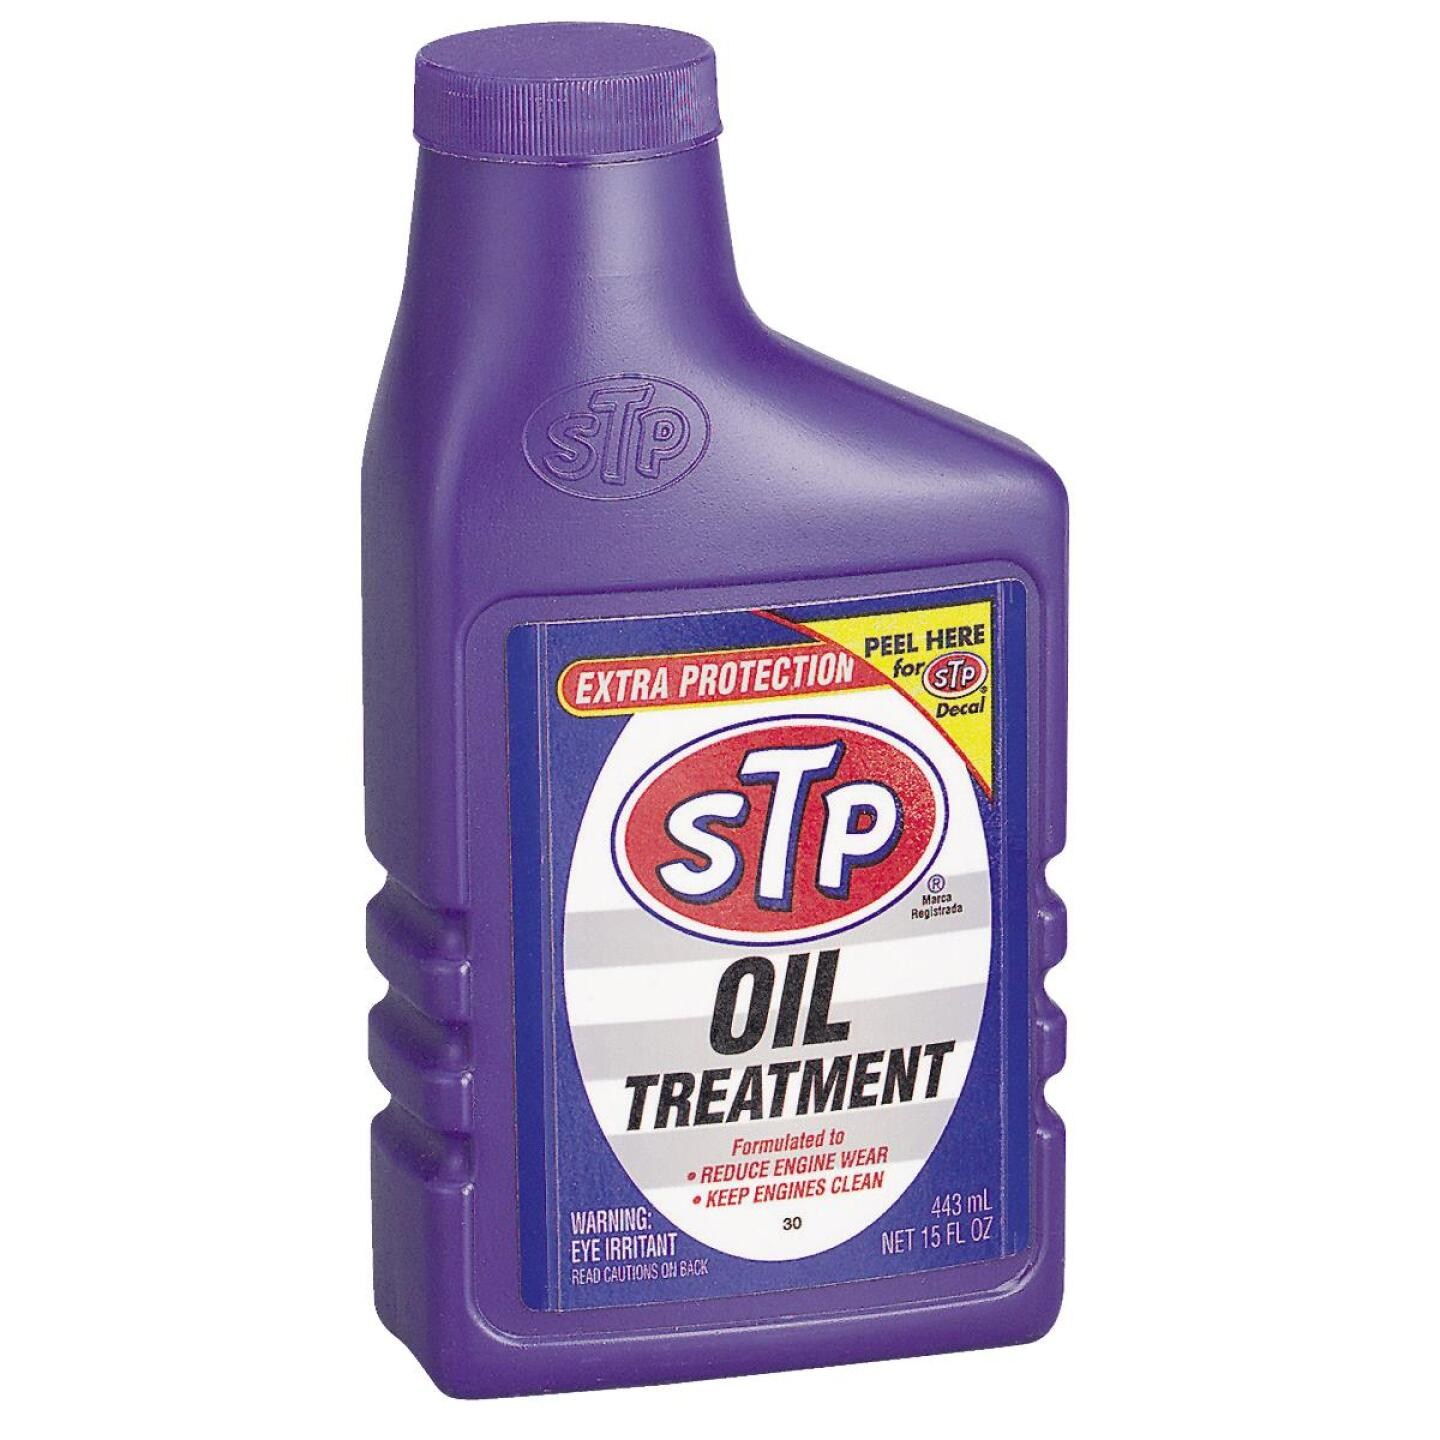 STP 15 Oz. Oil Treatment Image 1